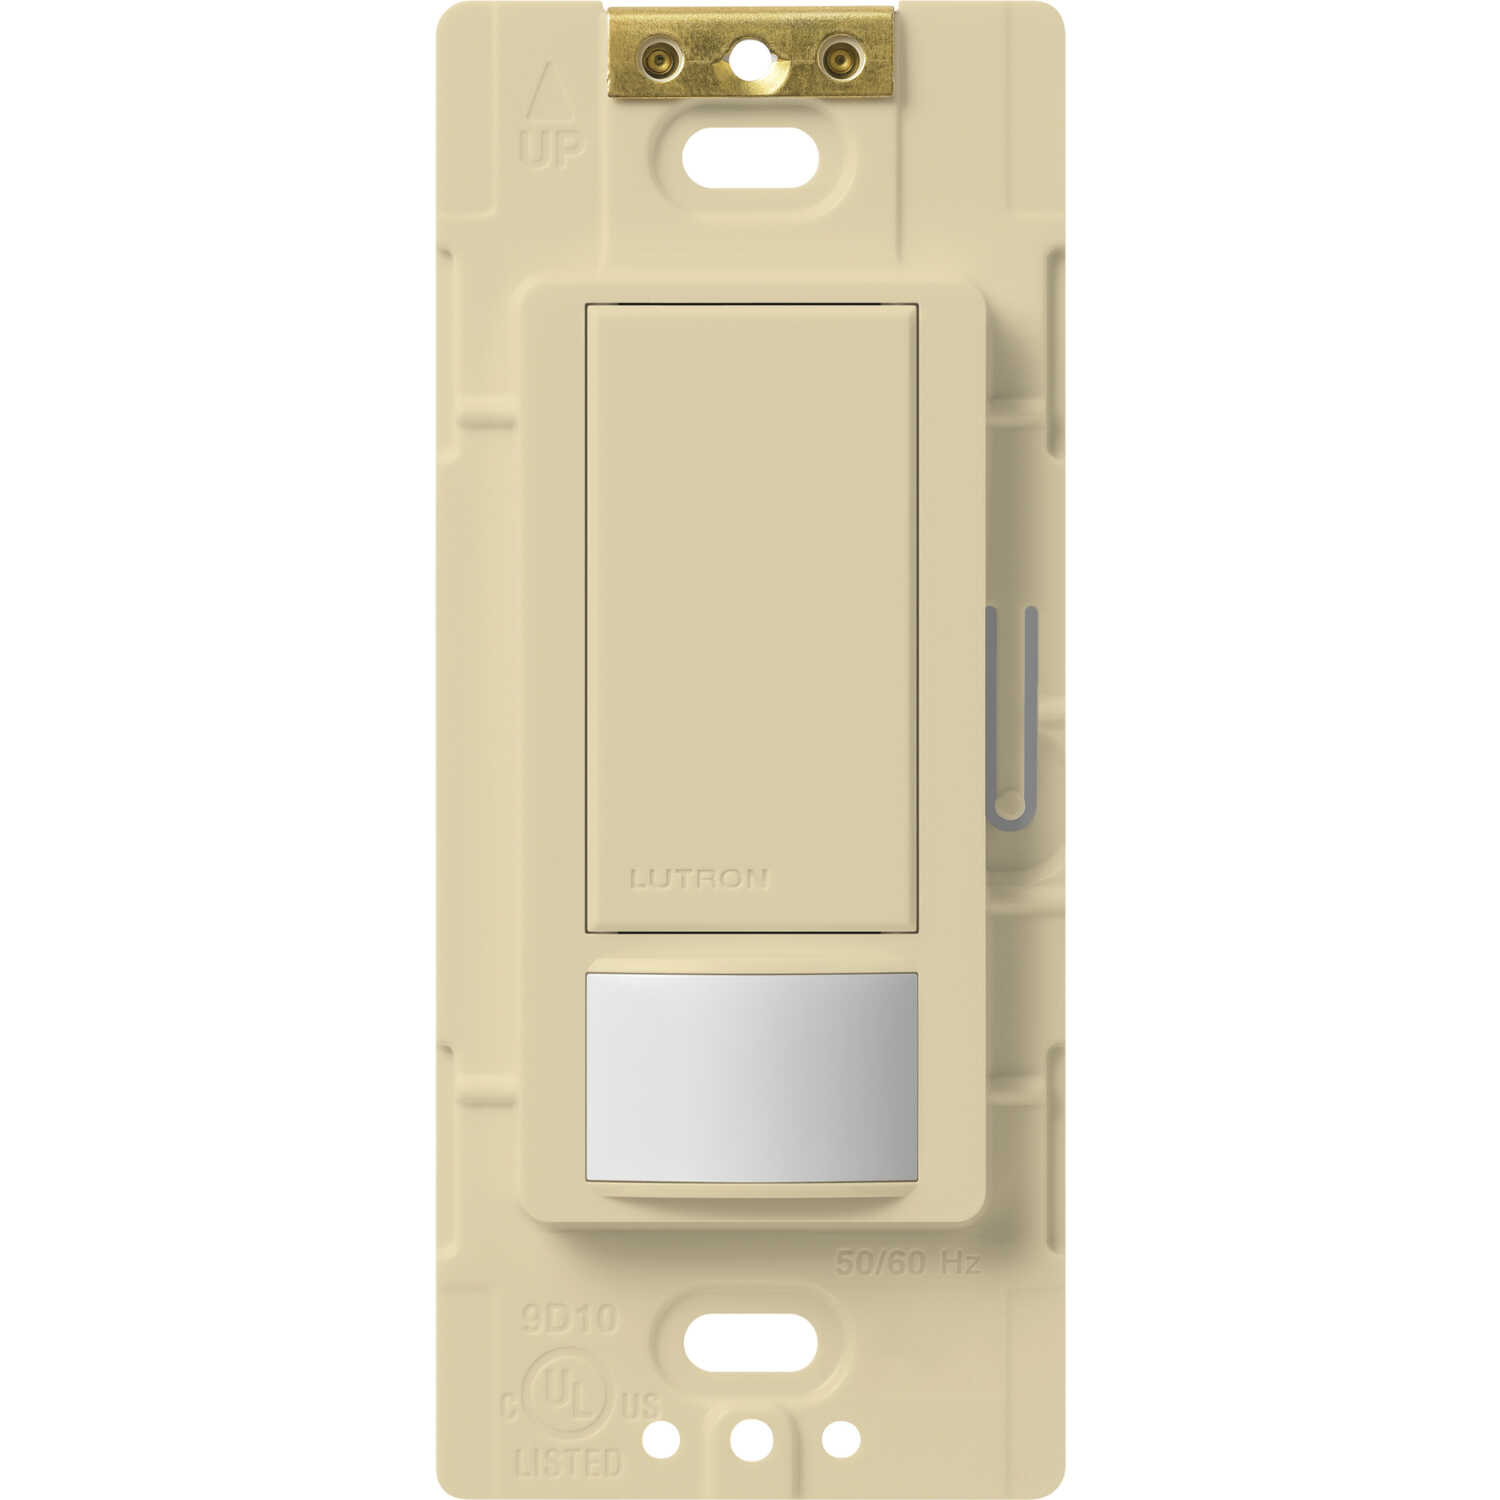 Lutron  Maestro Occupancy  Motion Sensor  Switch  Ivory  2 amps